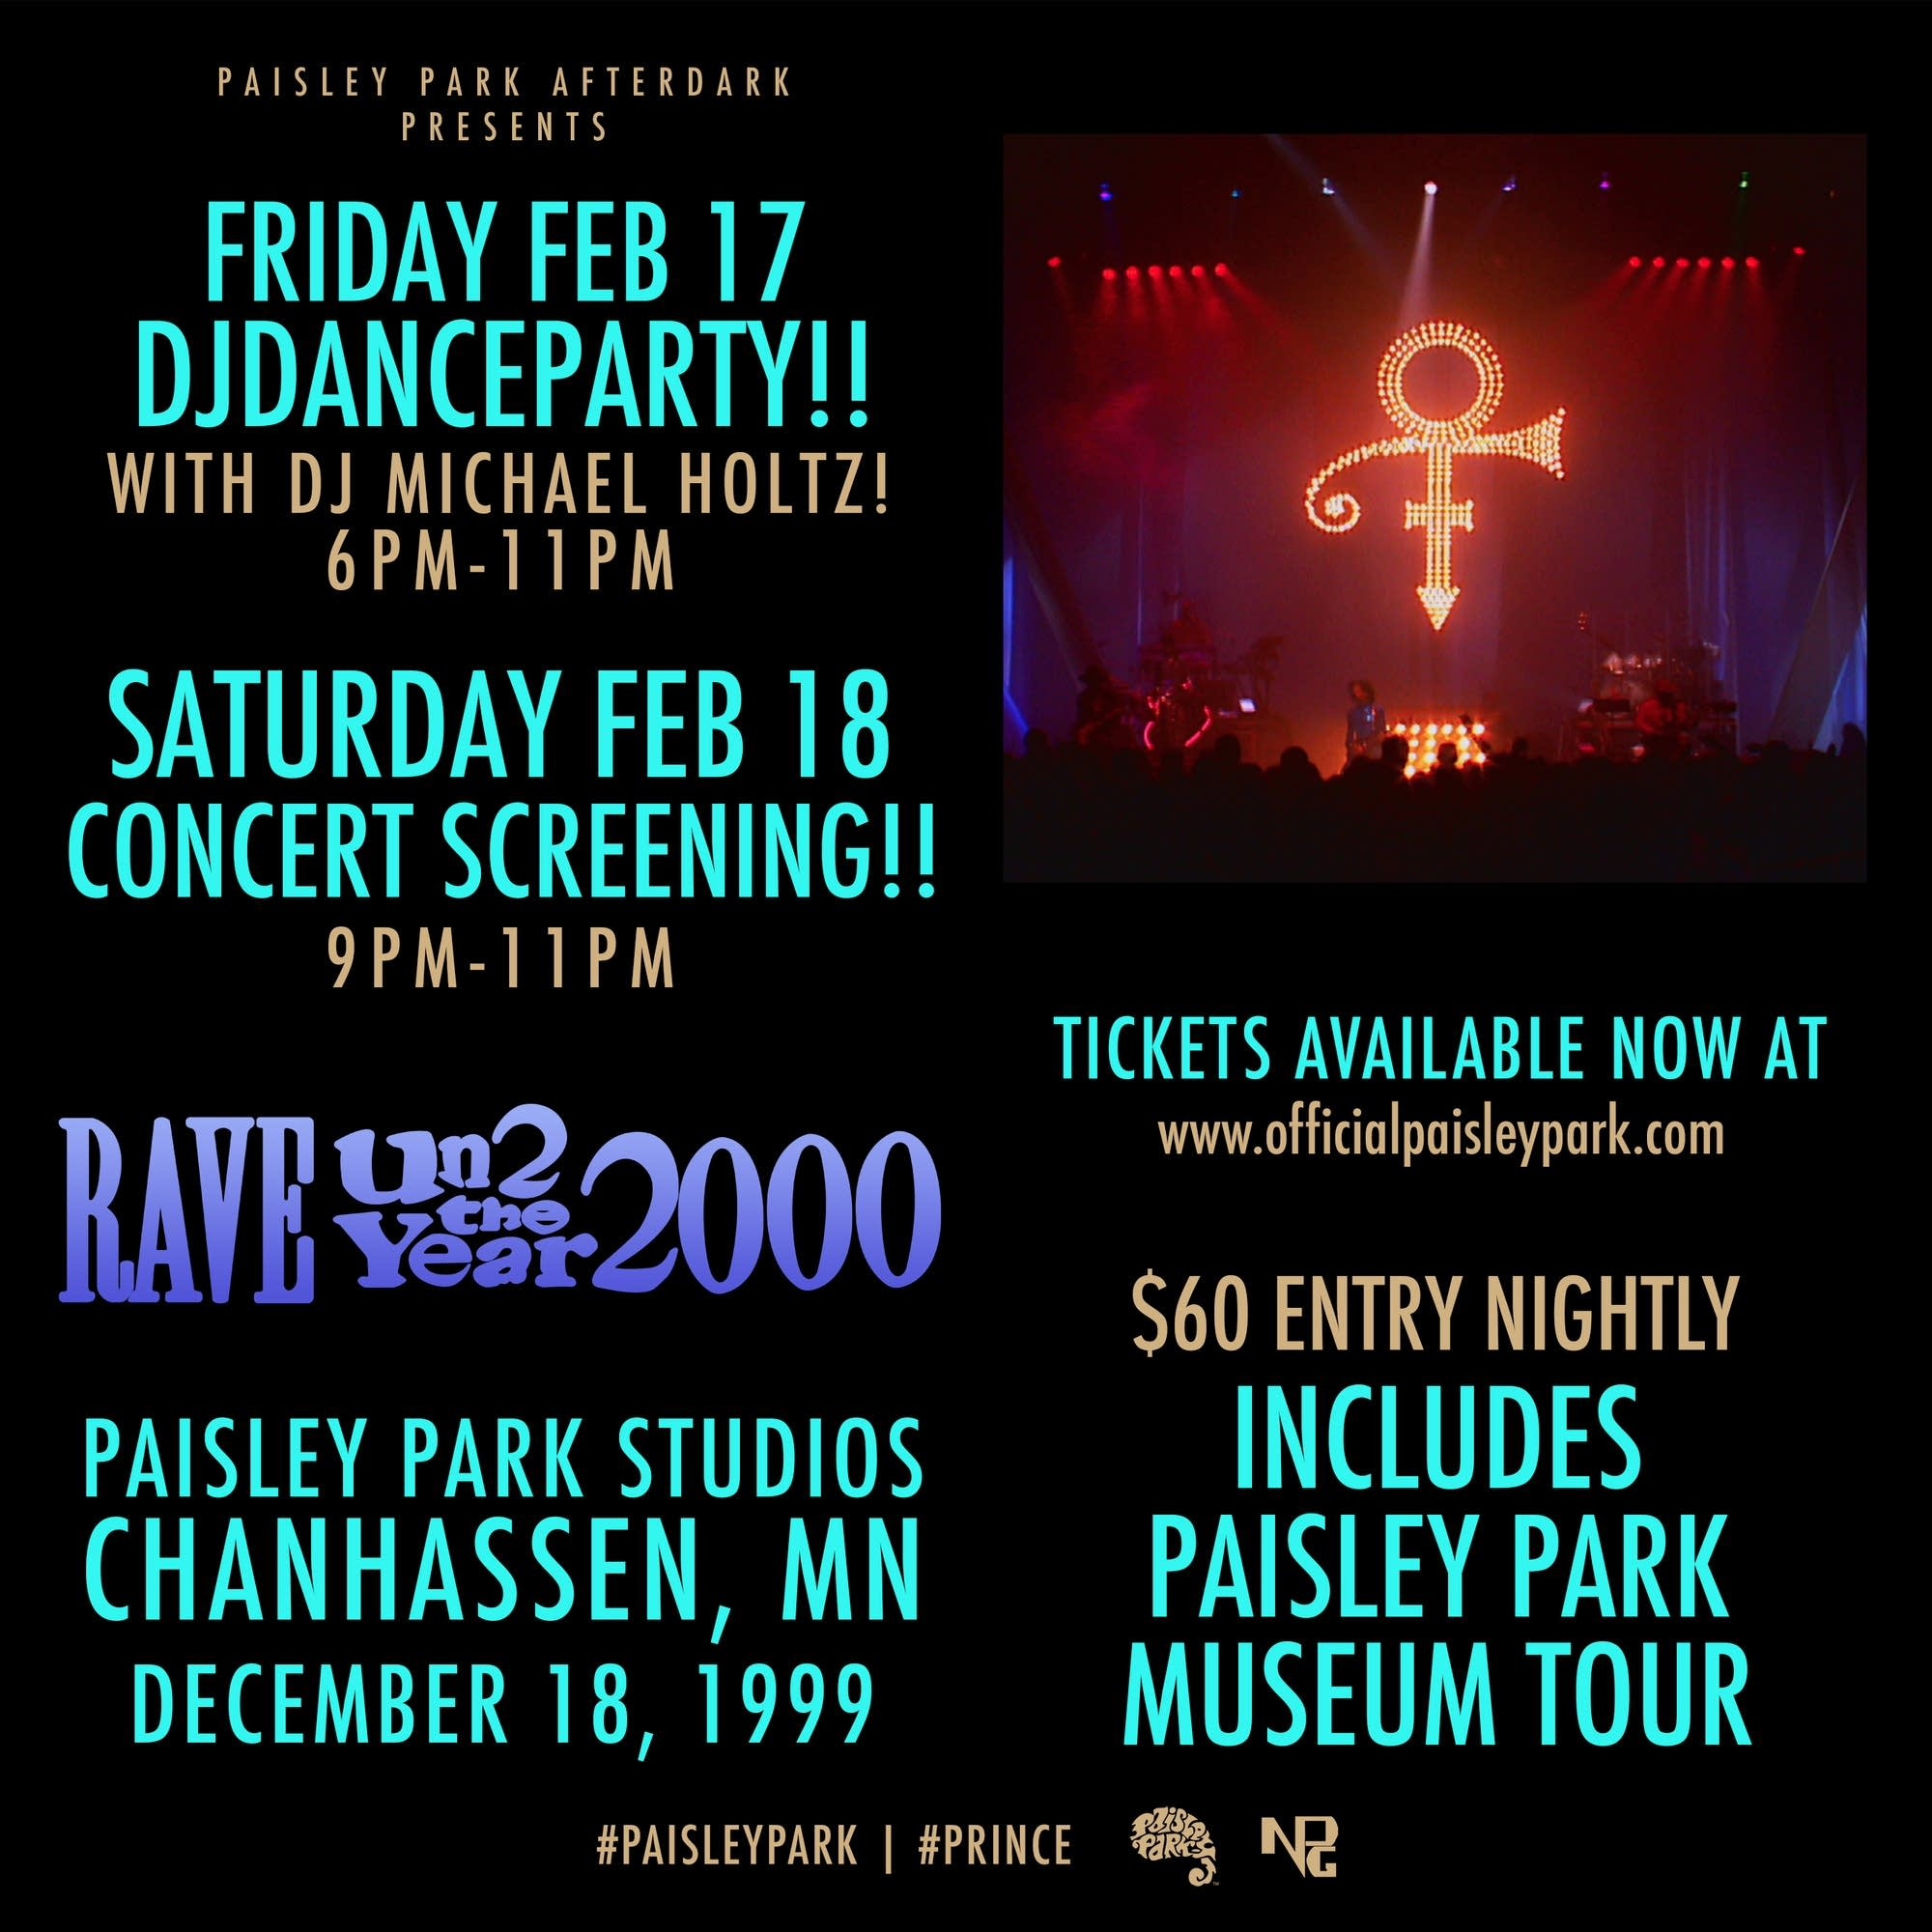 A flyer for weekend events at Paisley Park